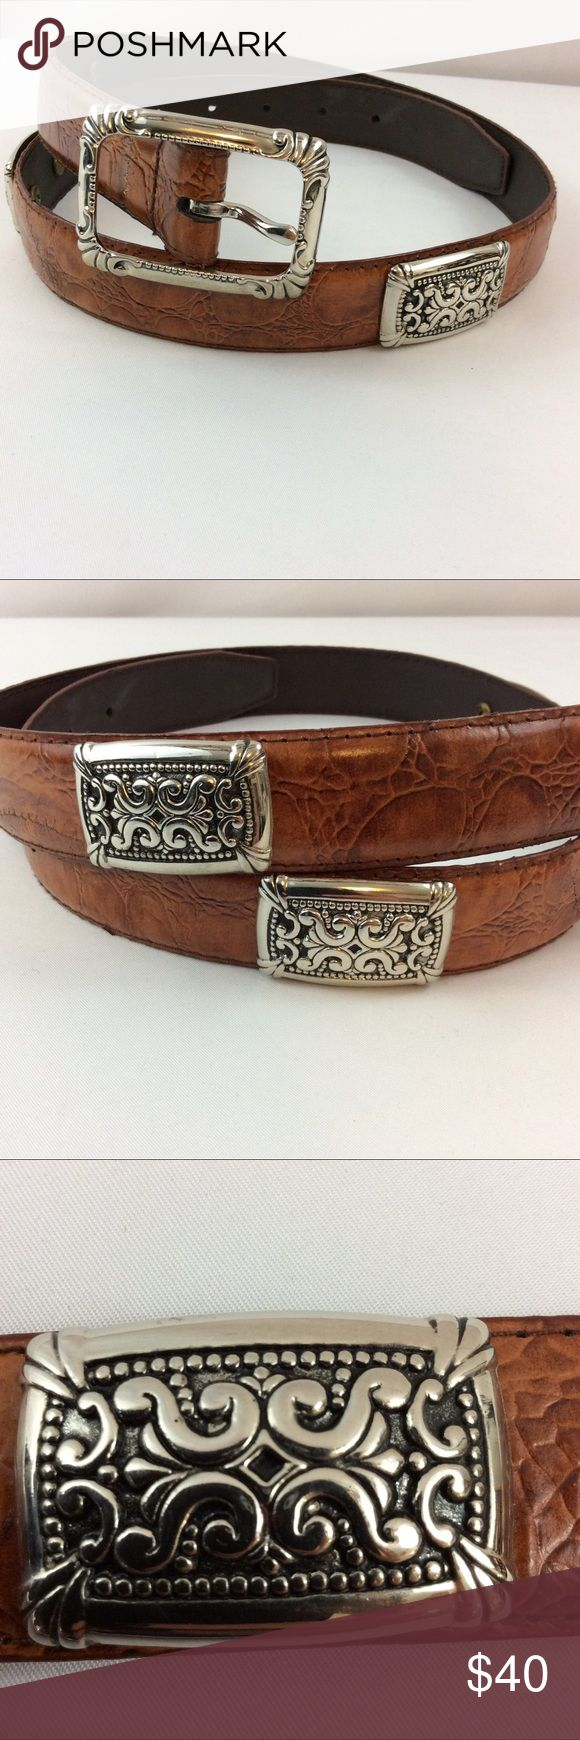 """LEATHER CONCHO BELT NEW I don't  think I wore this and if so it was one time so it's perfect condition!  Beautiful design on the (4) conchos, the belt buckle has an intricate design as well! LEATHER/sz M/5 hole adjustment! MEASUREMENTS: Length: 36 1/2"""" (without buckle)>>width: 1"""">> (4) Conchos: 1 1/2"""" long & 1""""wide>>Buckle: 2 1/4"""" long & 1 3/4 wide 🔥BRANDED FOR VIEWS--no brand listed on belt🔥 Free People Accessories Belts"""